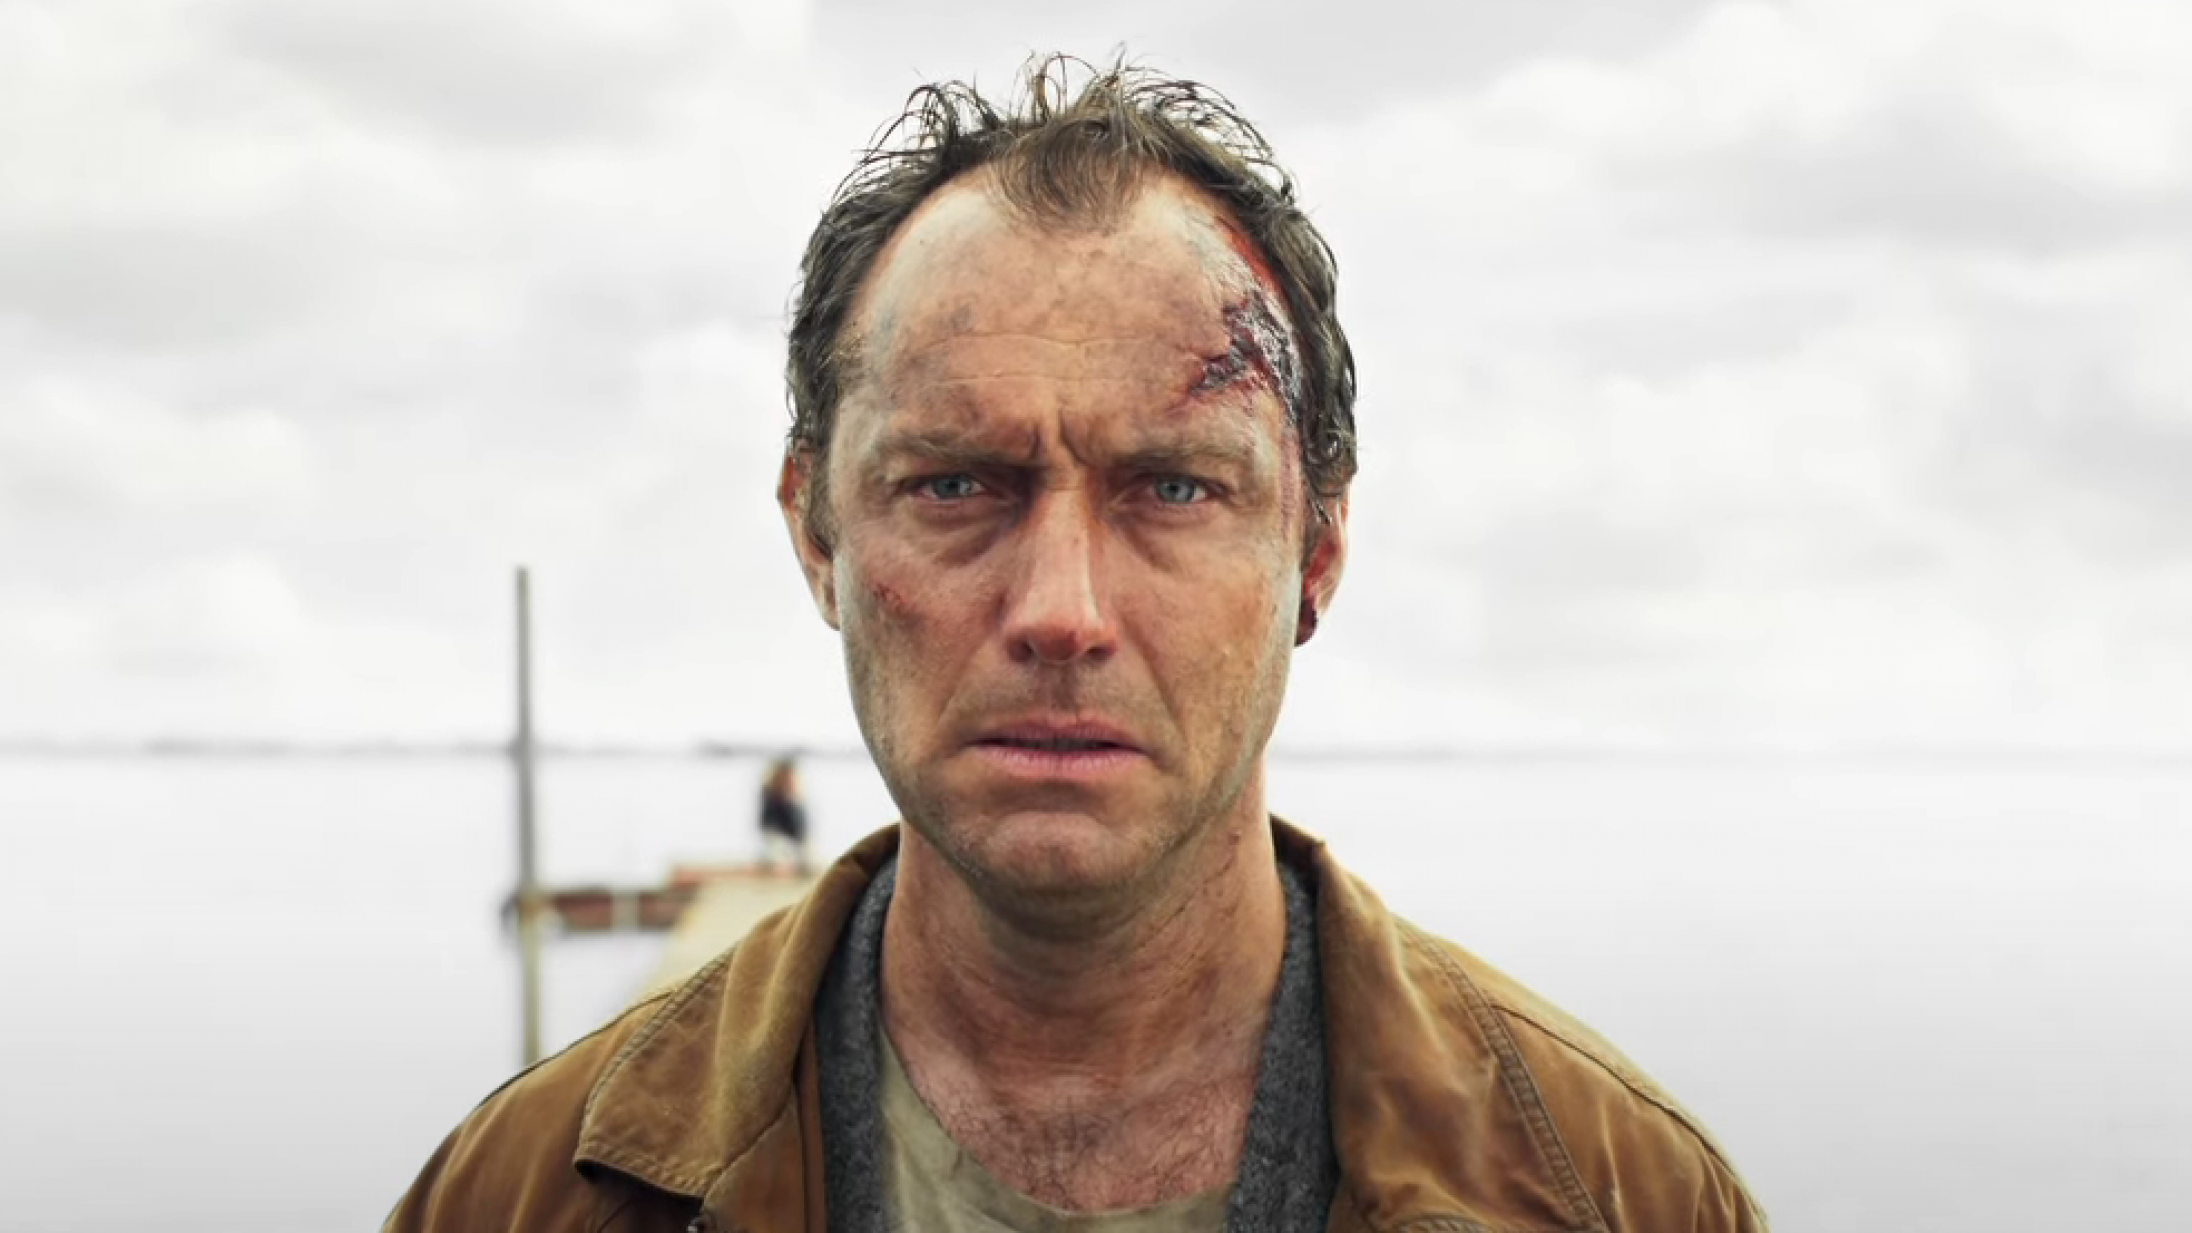 'The Third Day': Jude Law er fanget i et hallucinatorisk mareridt i radikal HBO-gyserserie